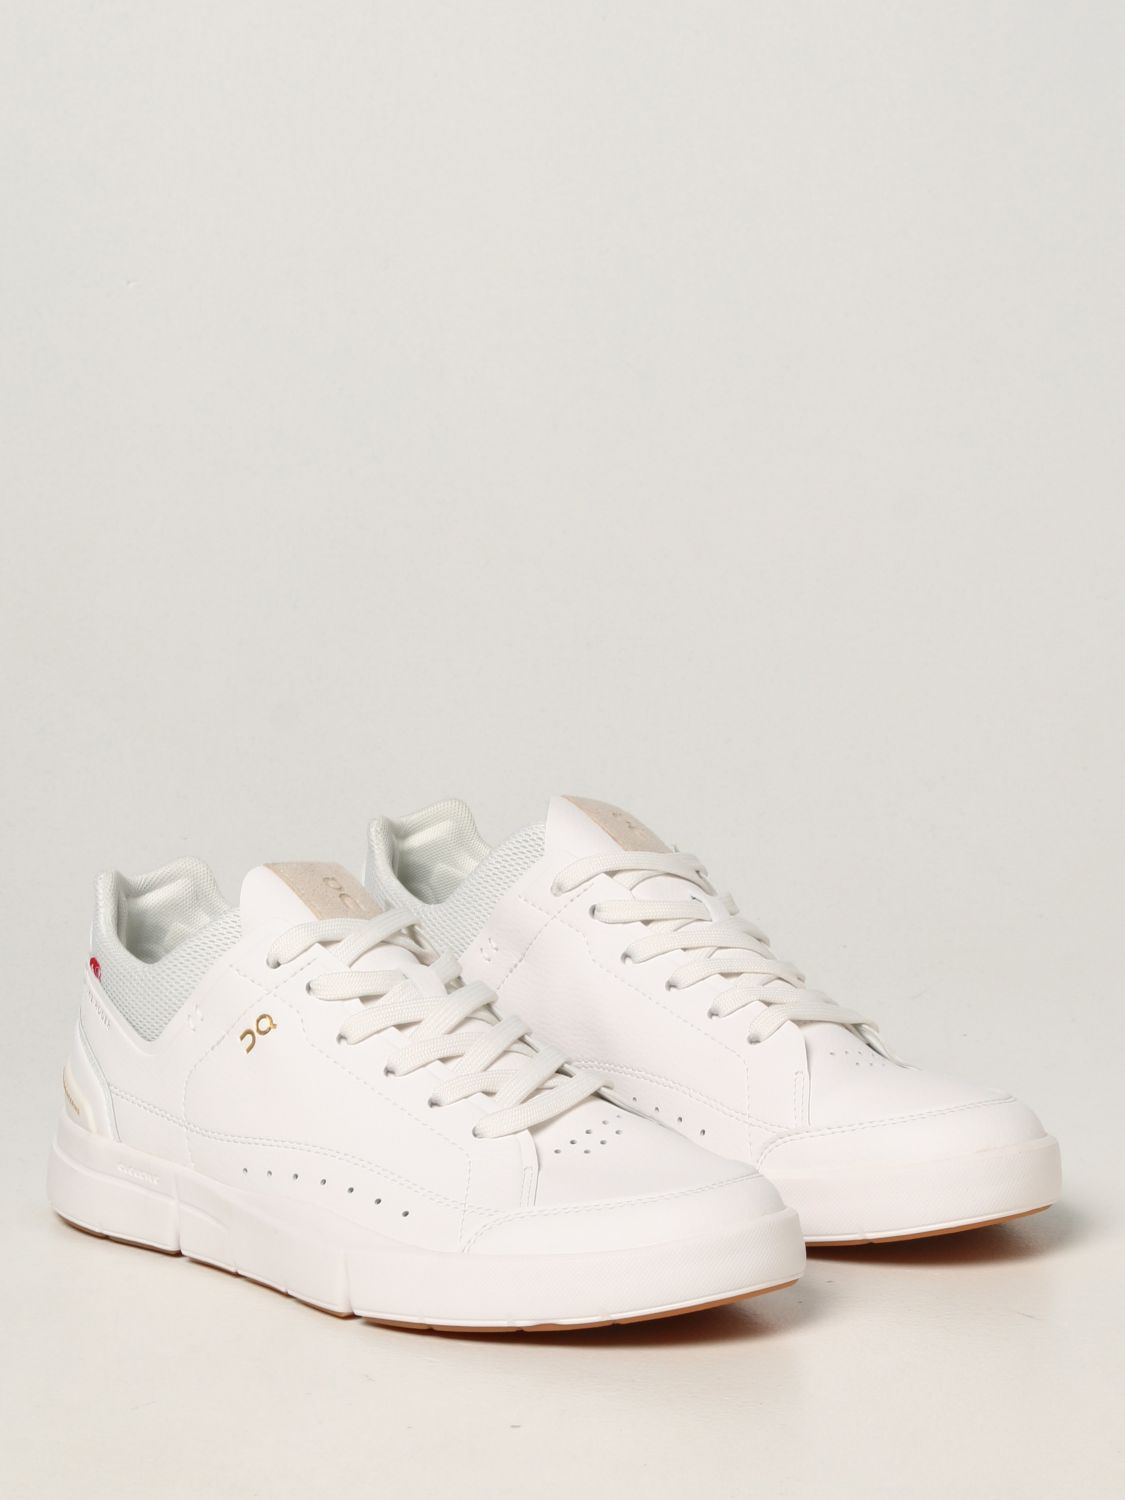 Baskets The Roger: Chaussures femme The Roger blanc 2